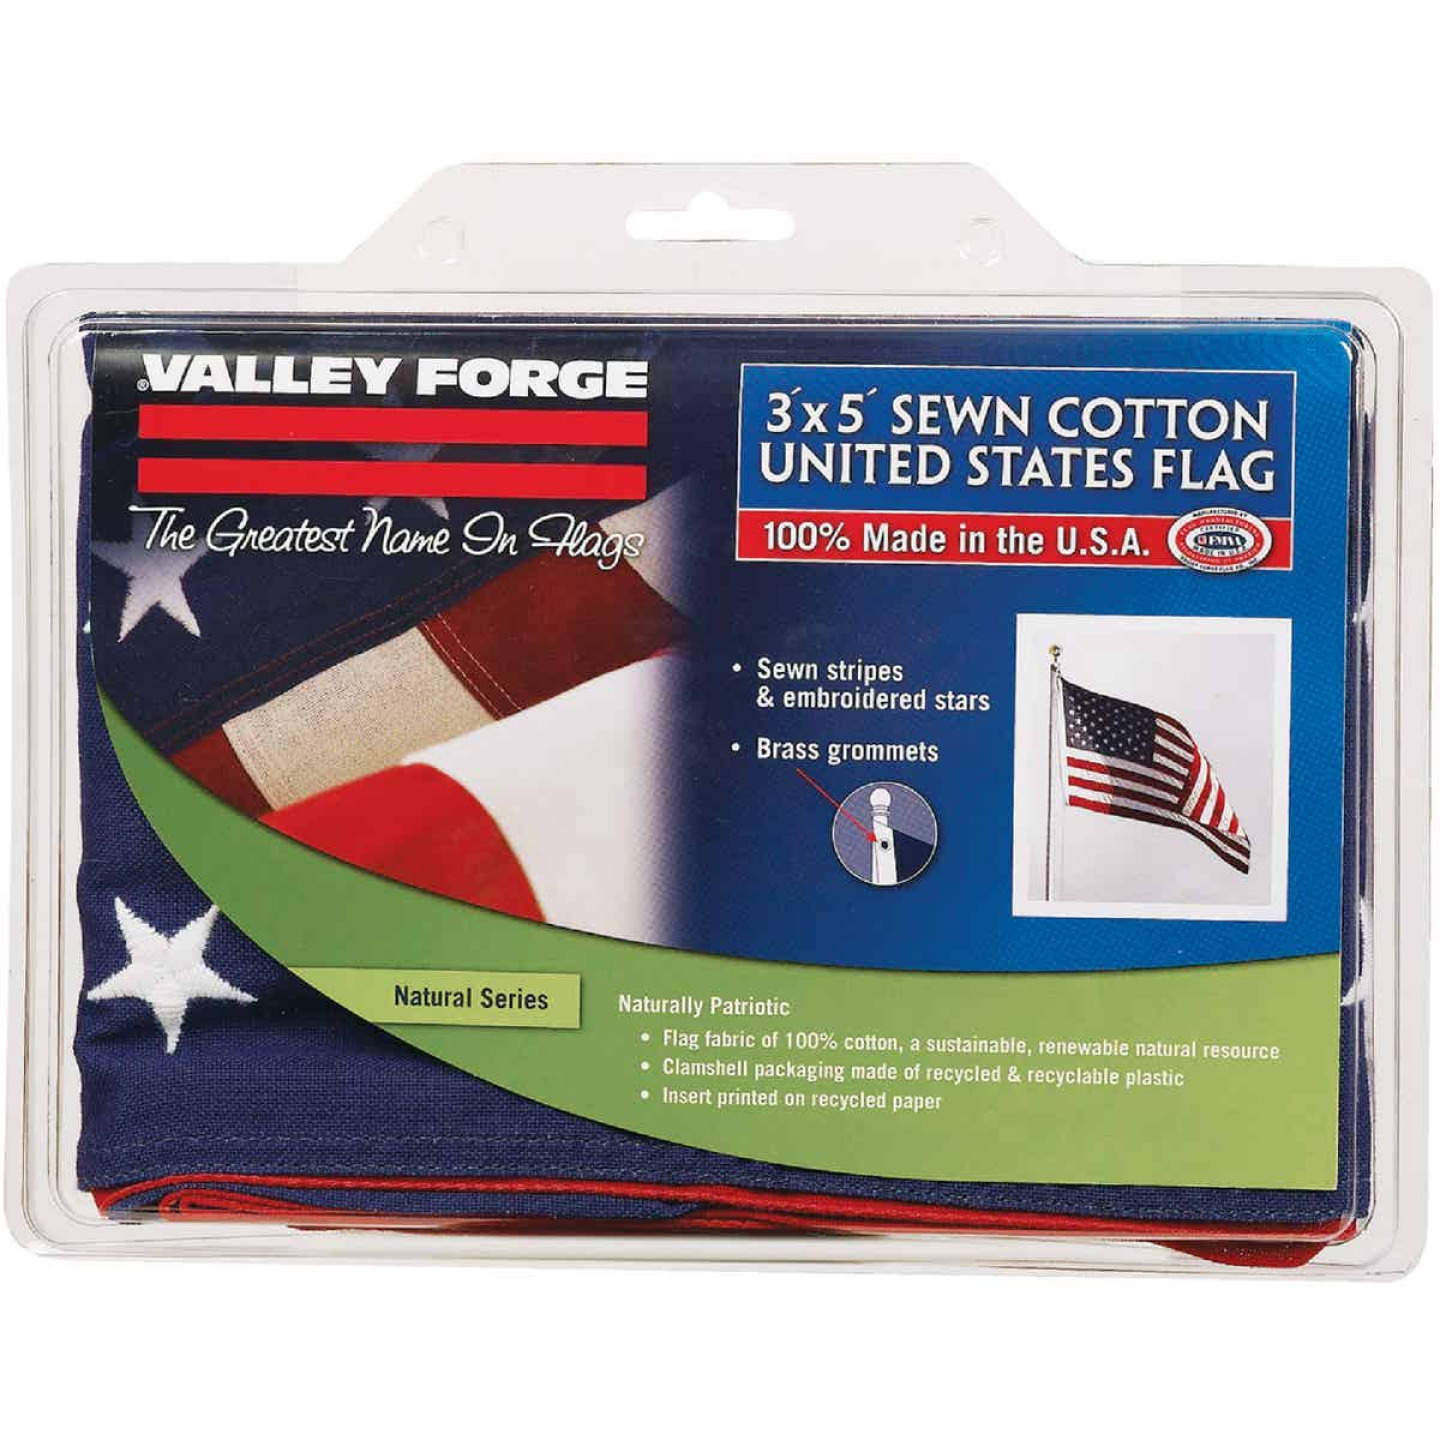 Valley Forge 3 Ft. x 5 Ft. Cotton Natural Series American Flag Image 1